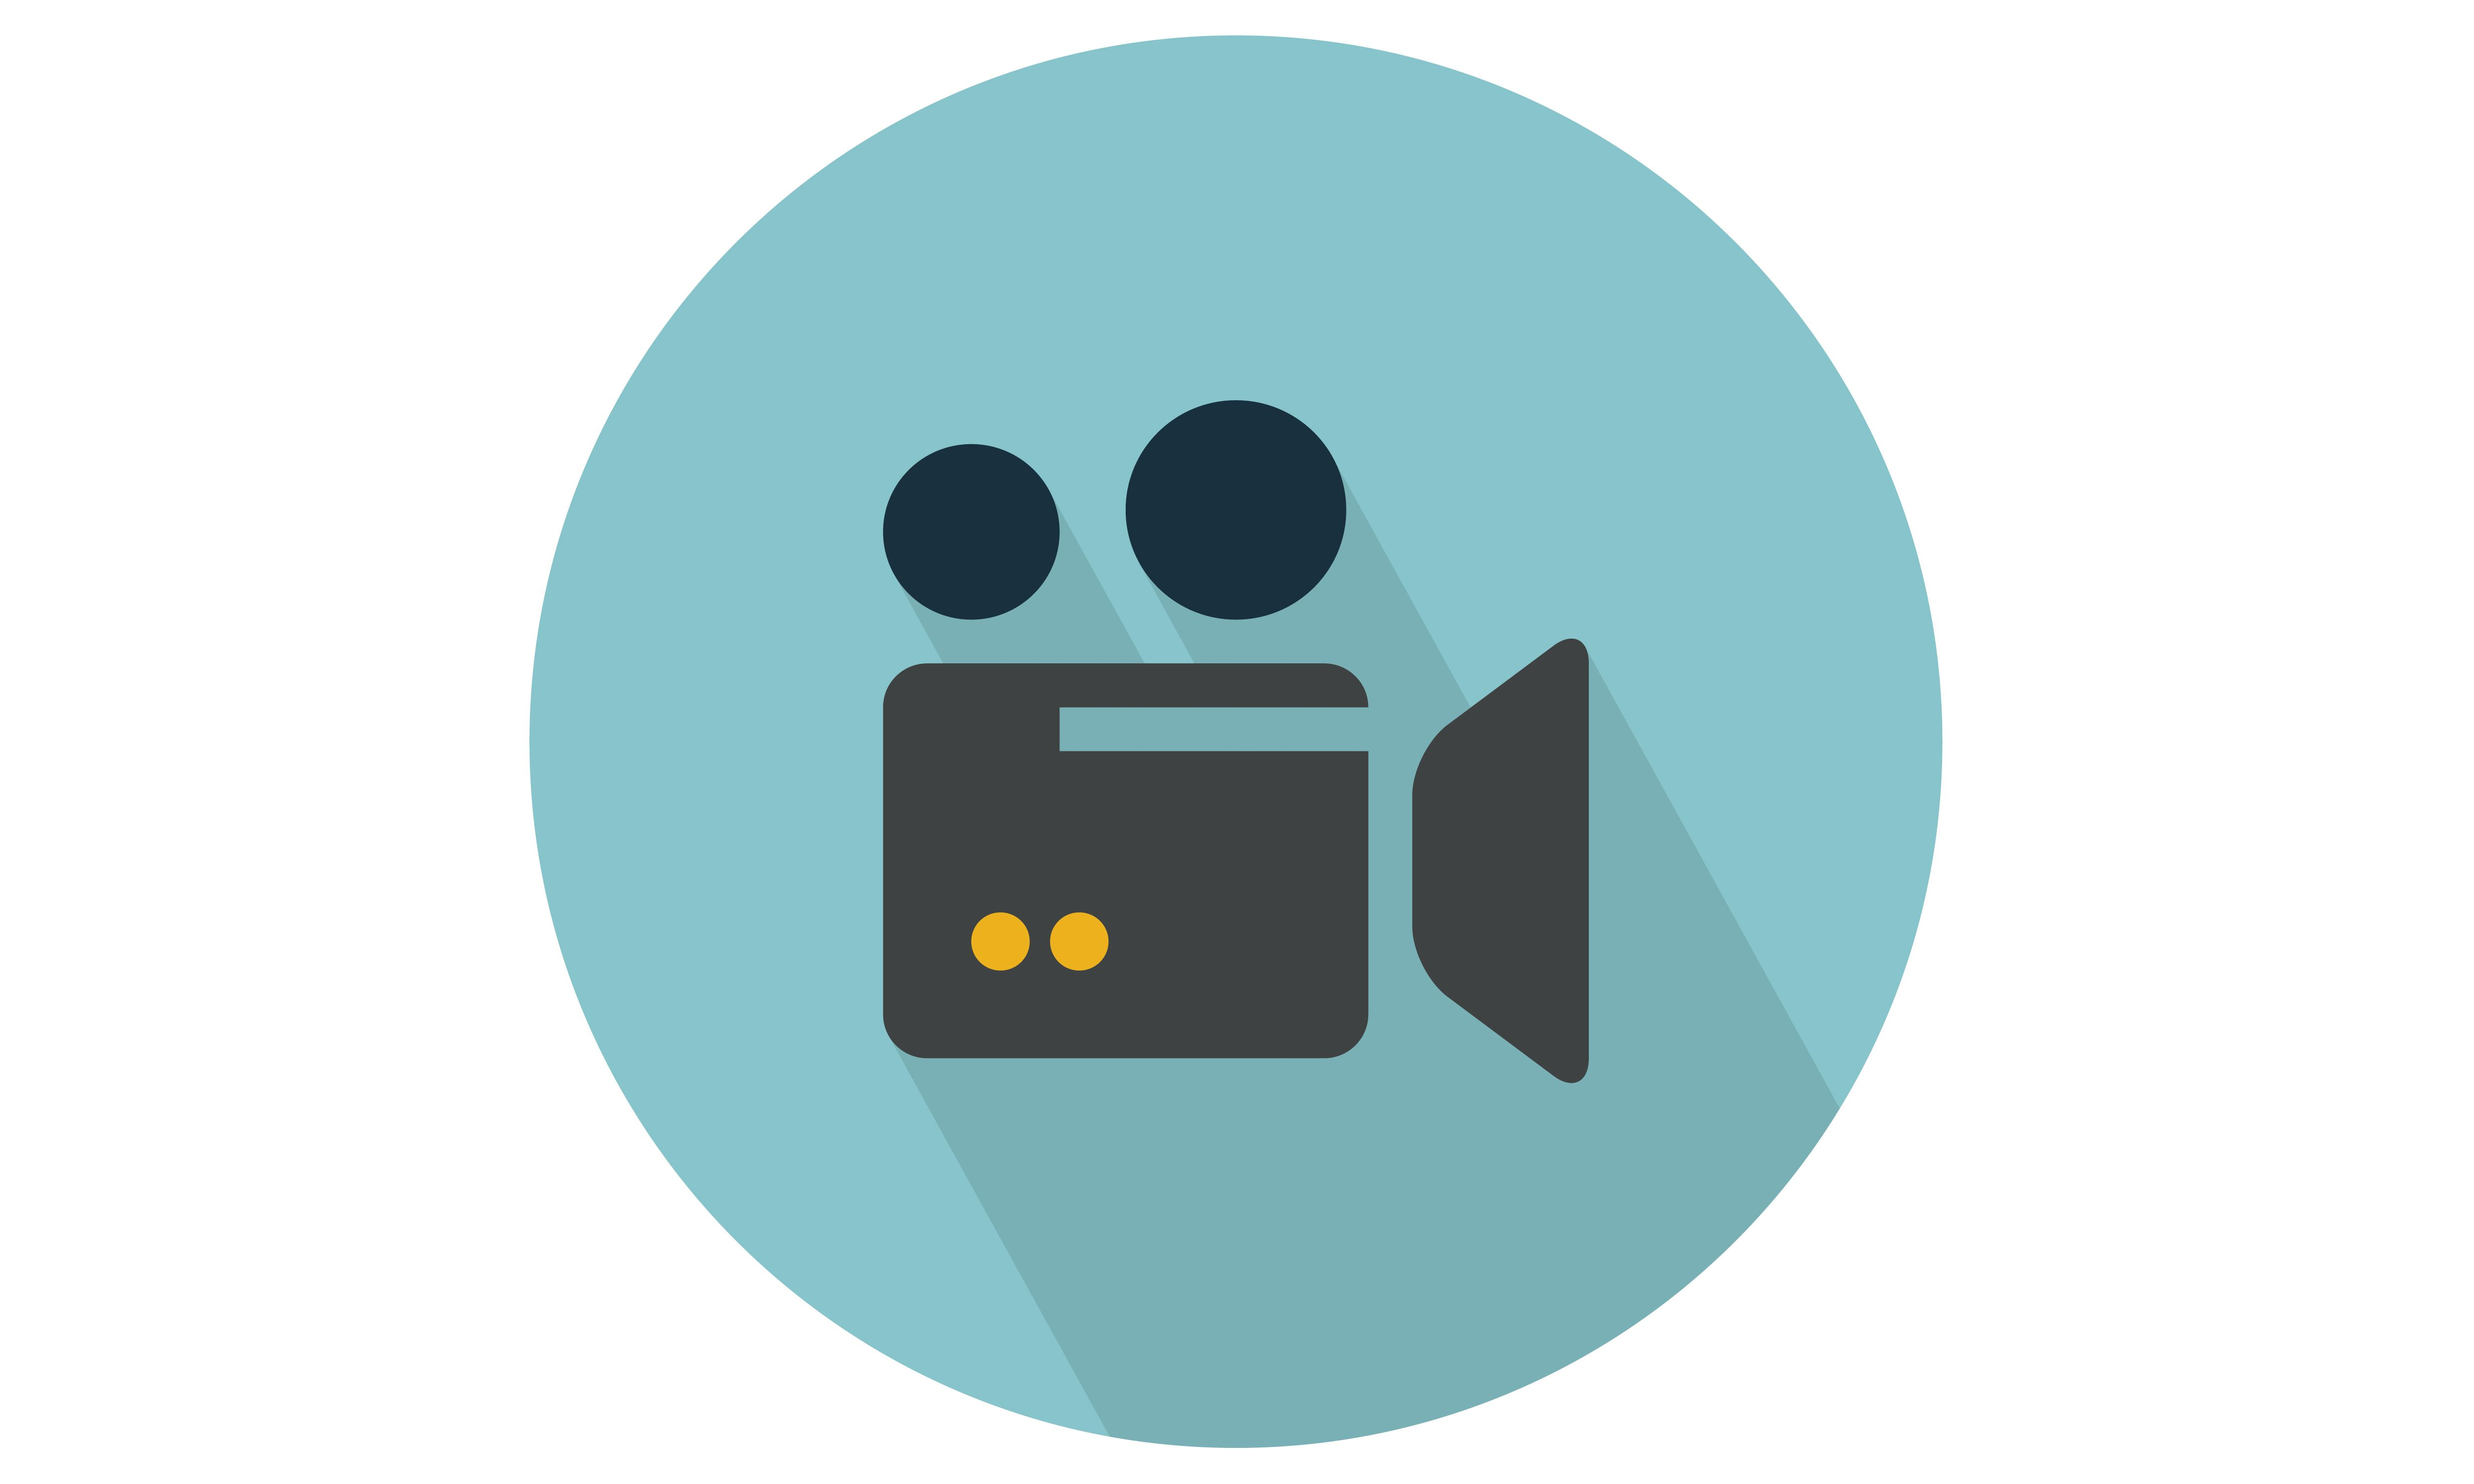 Movie / video camera Vector Illustration. From Our Range